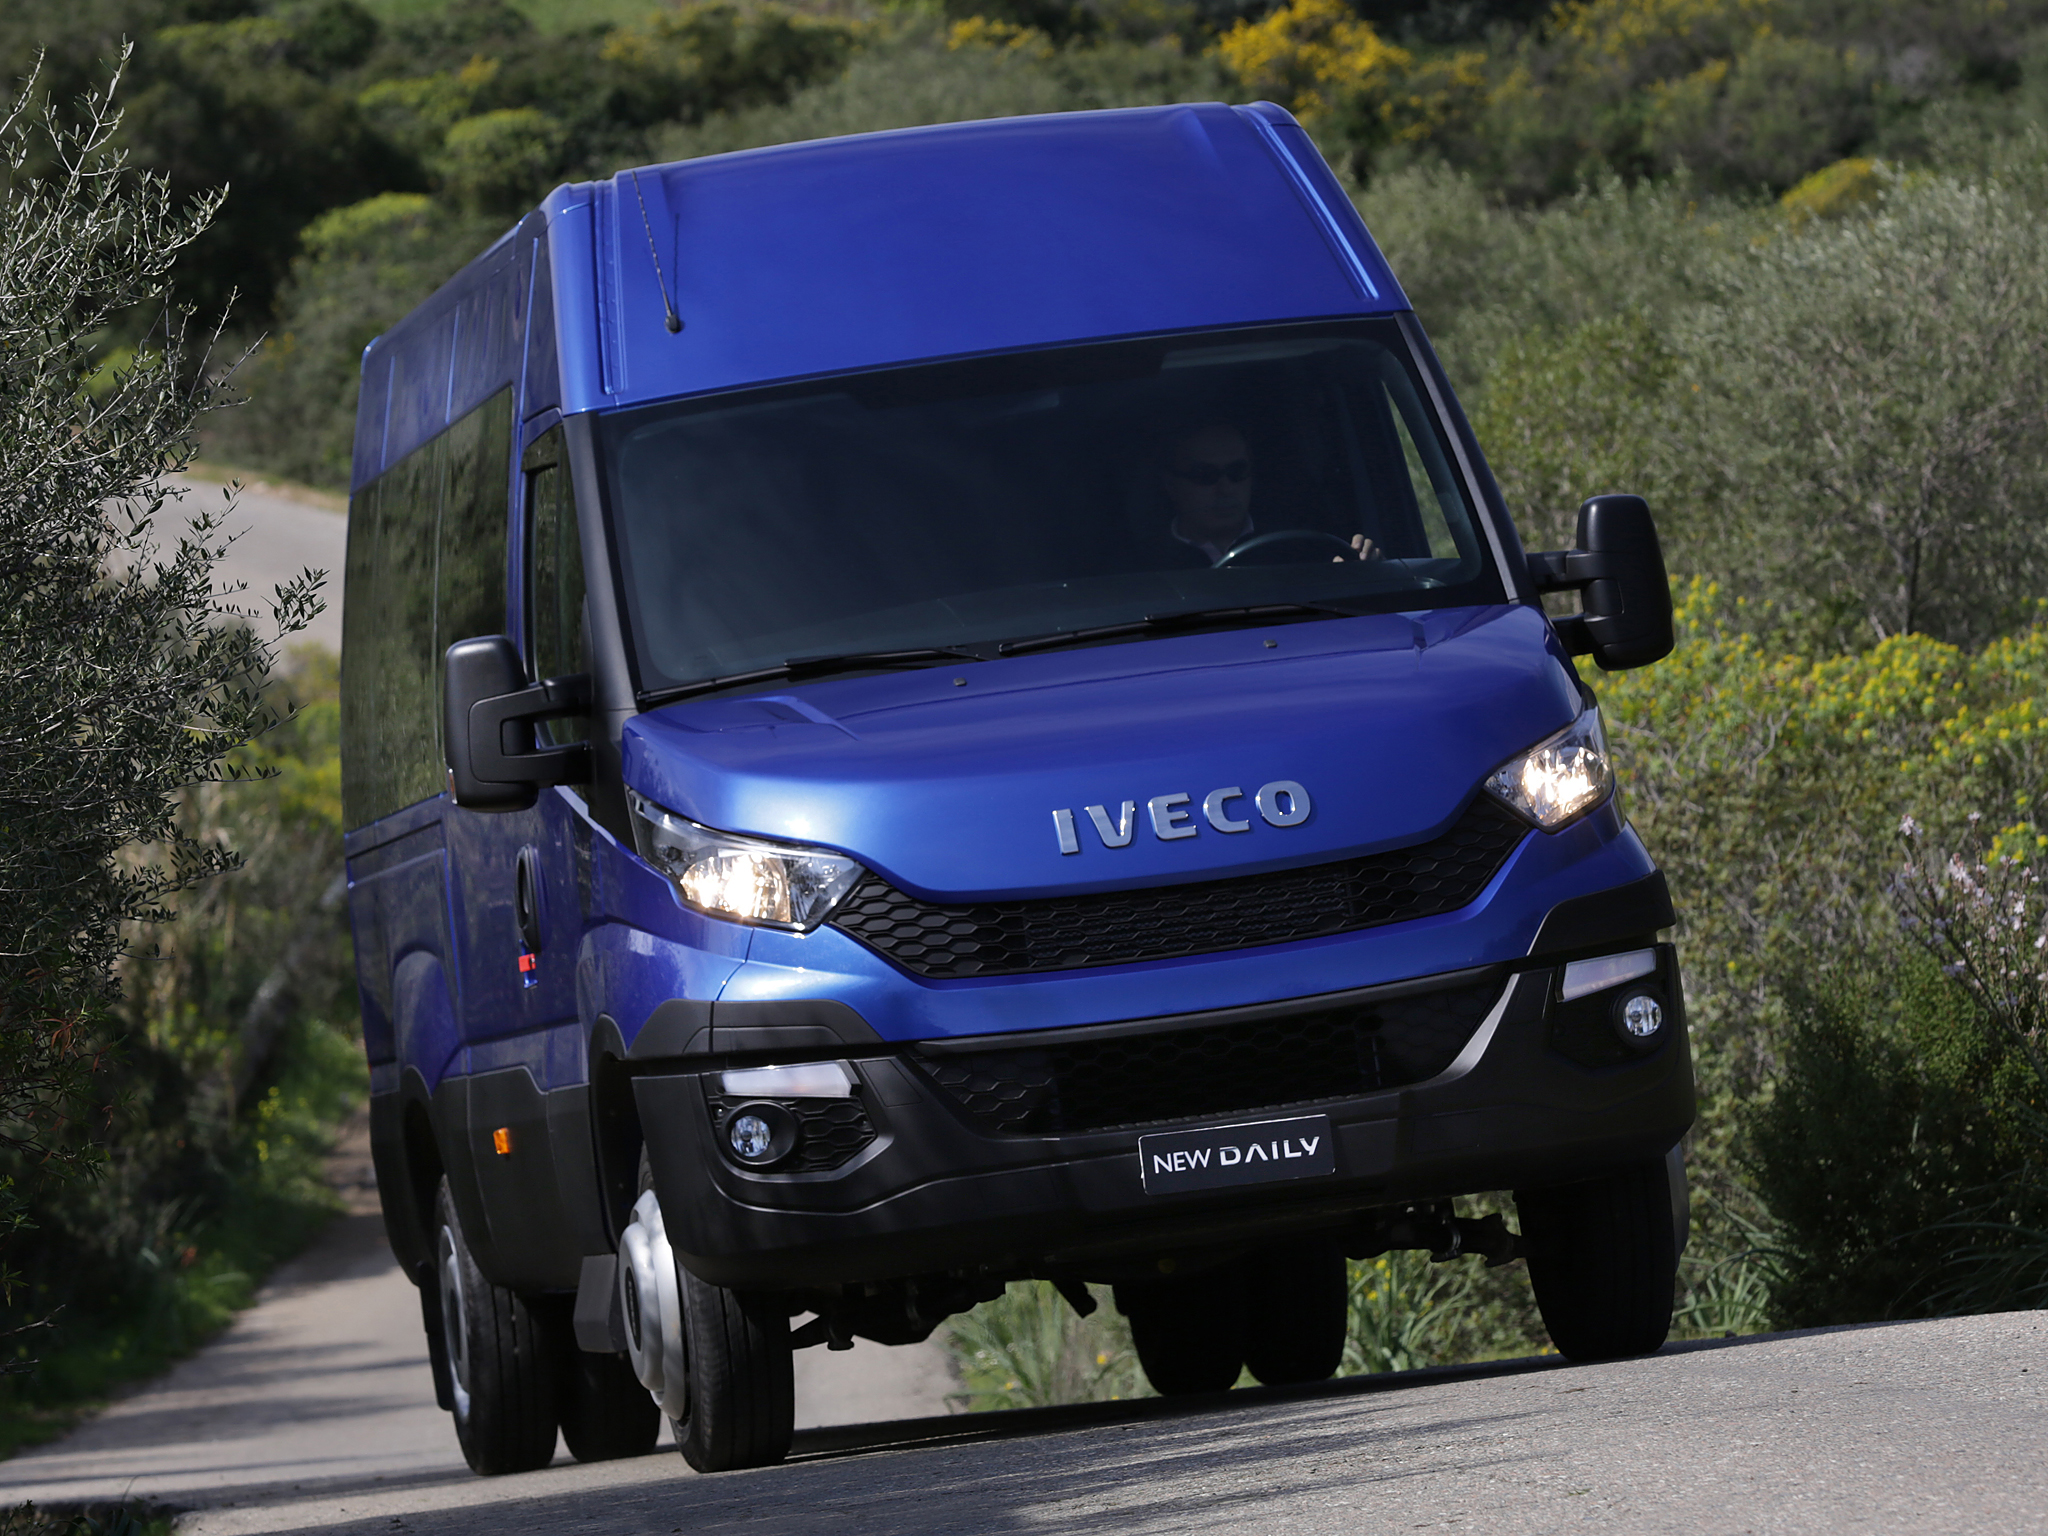 Iveco Reveals the New Daily for 2014. Say Its 80%